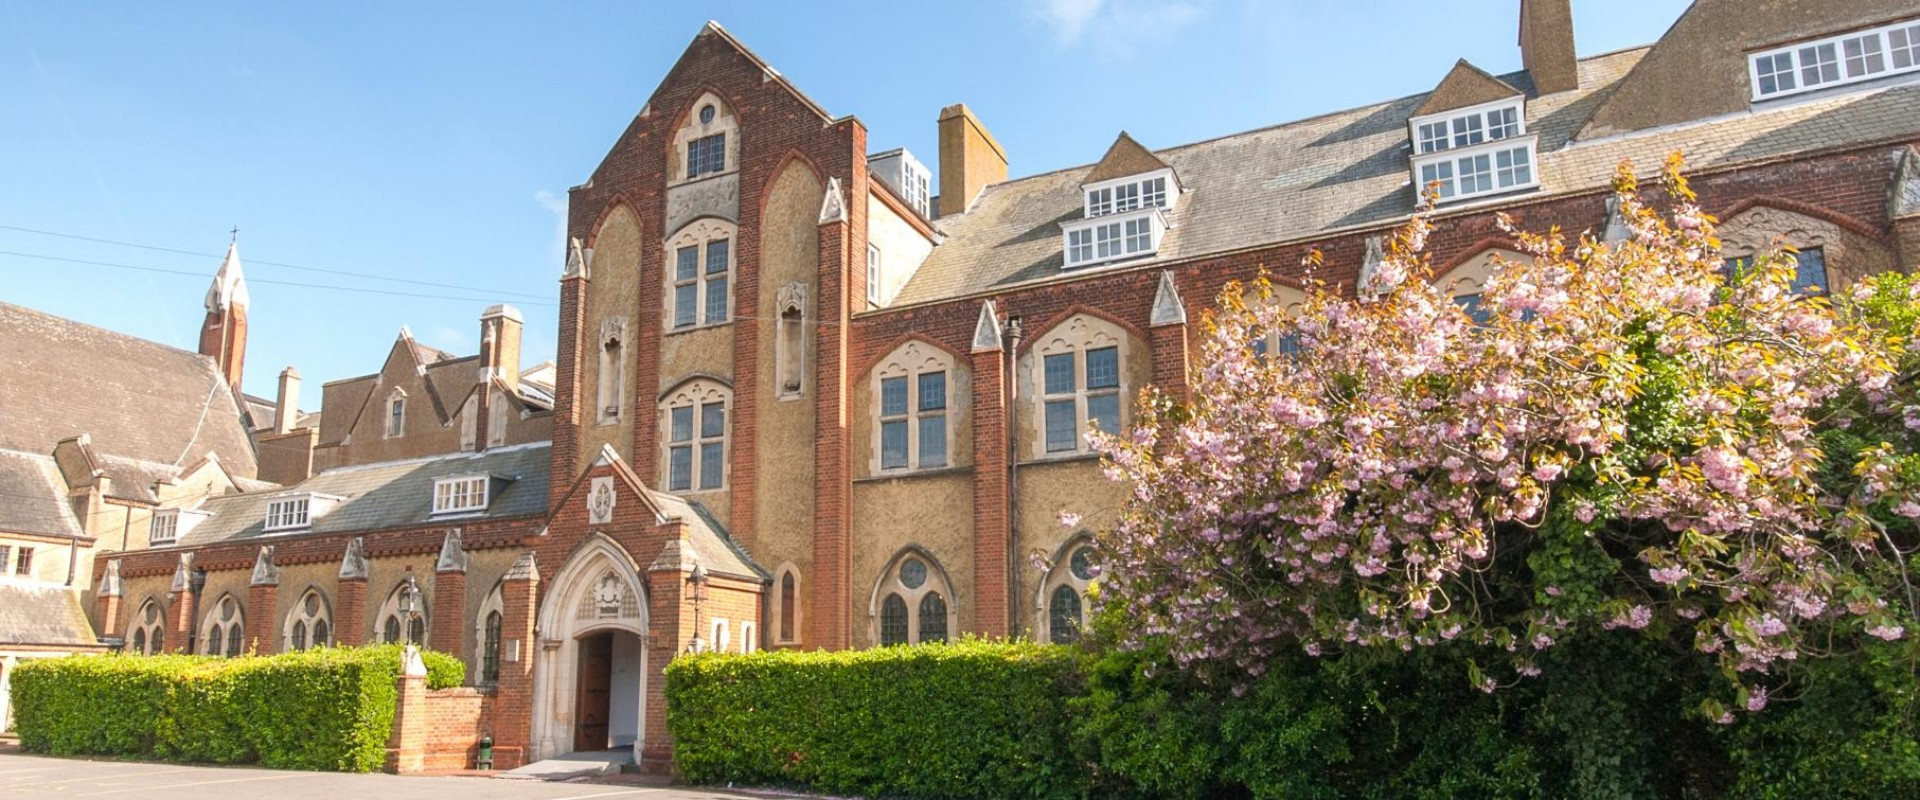 St Augustine S Thanet East Kent S Premier Venue For Your Special Day Home